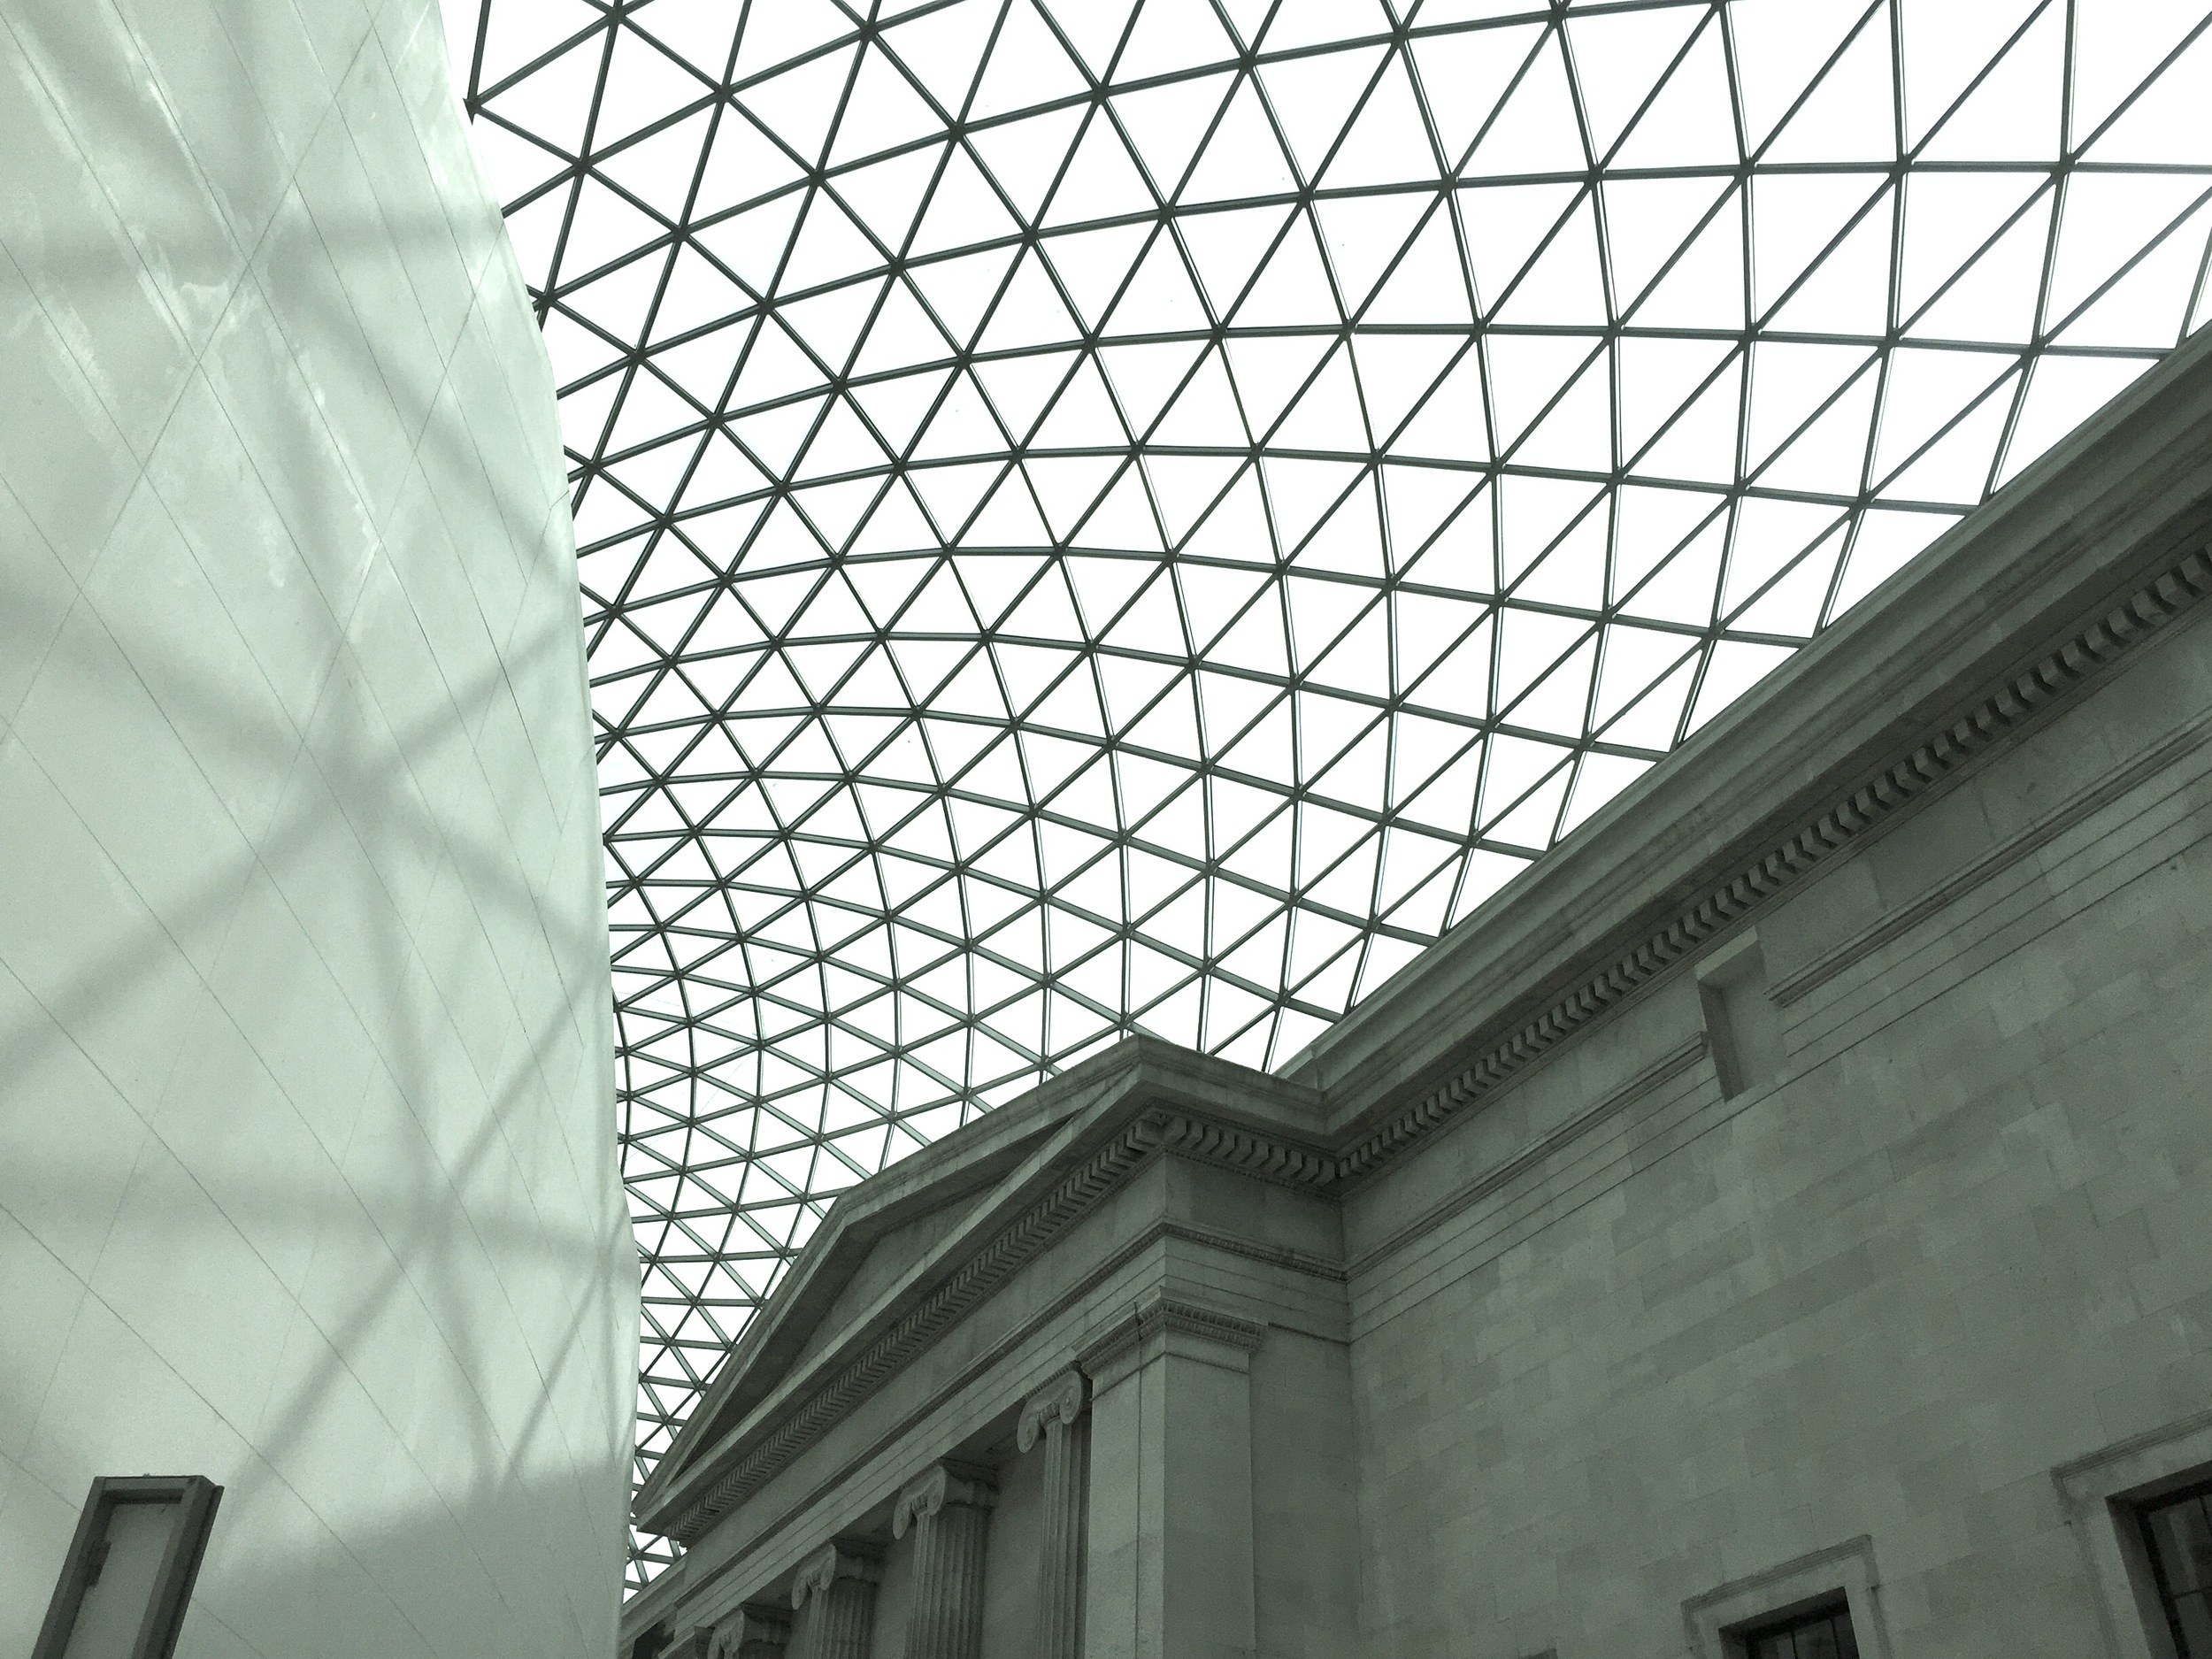 Inside the British Museum in London, England.